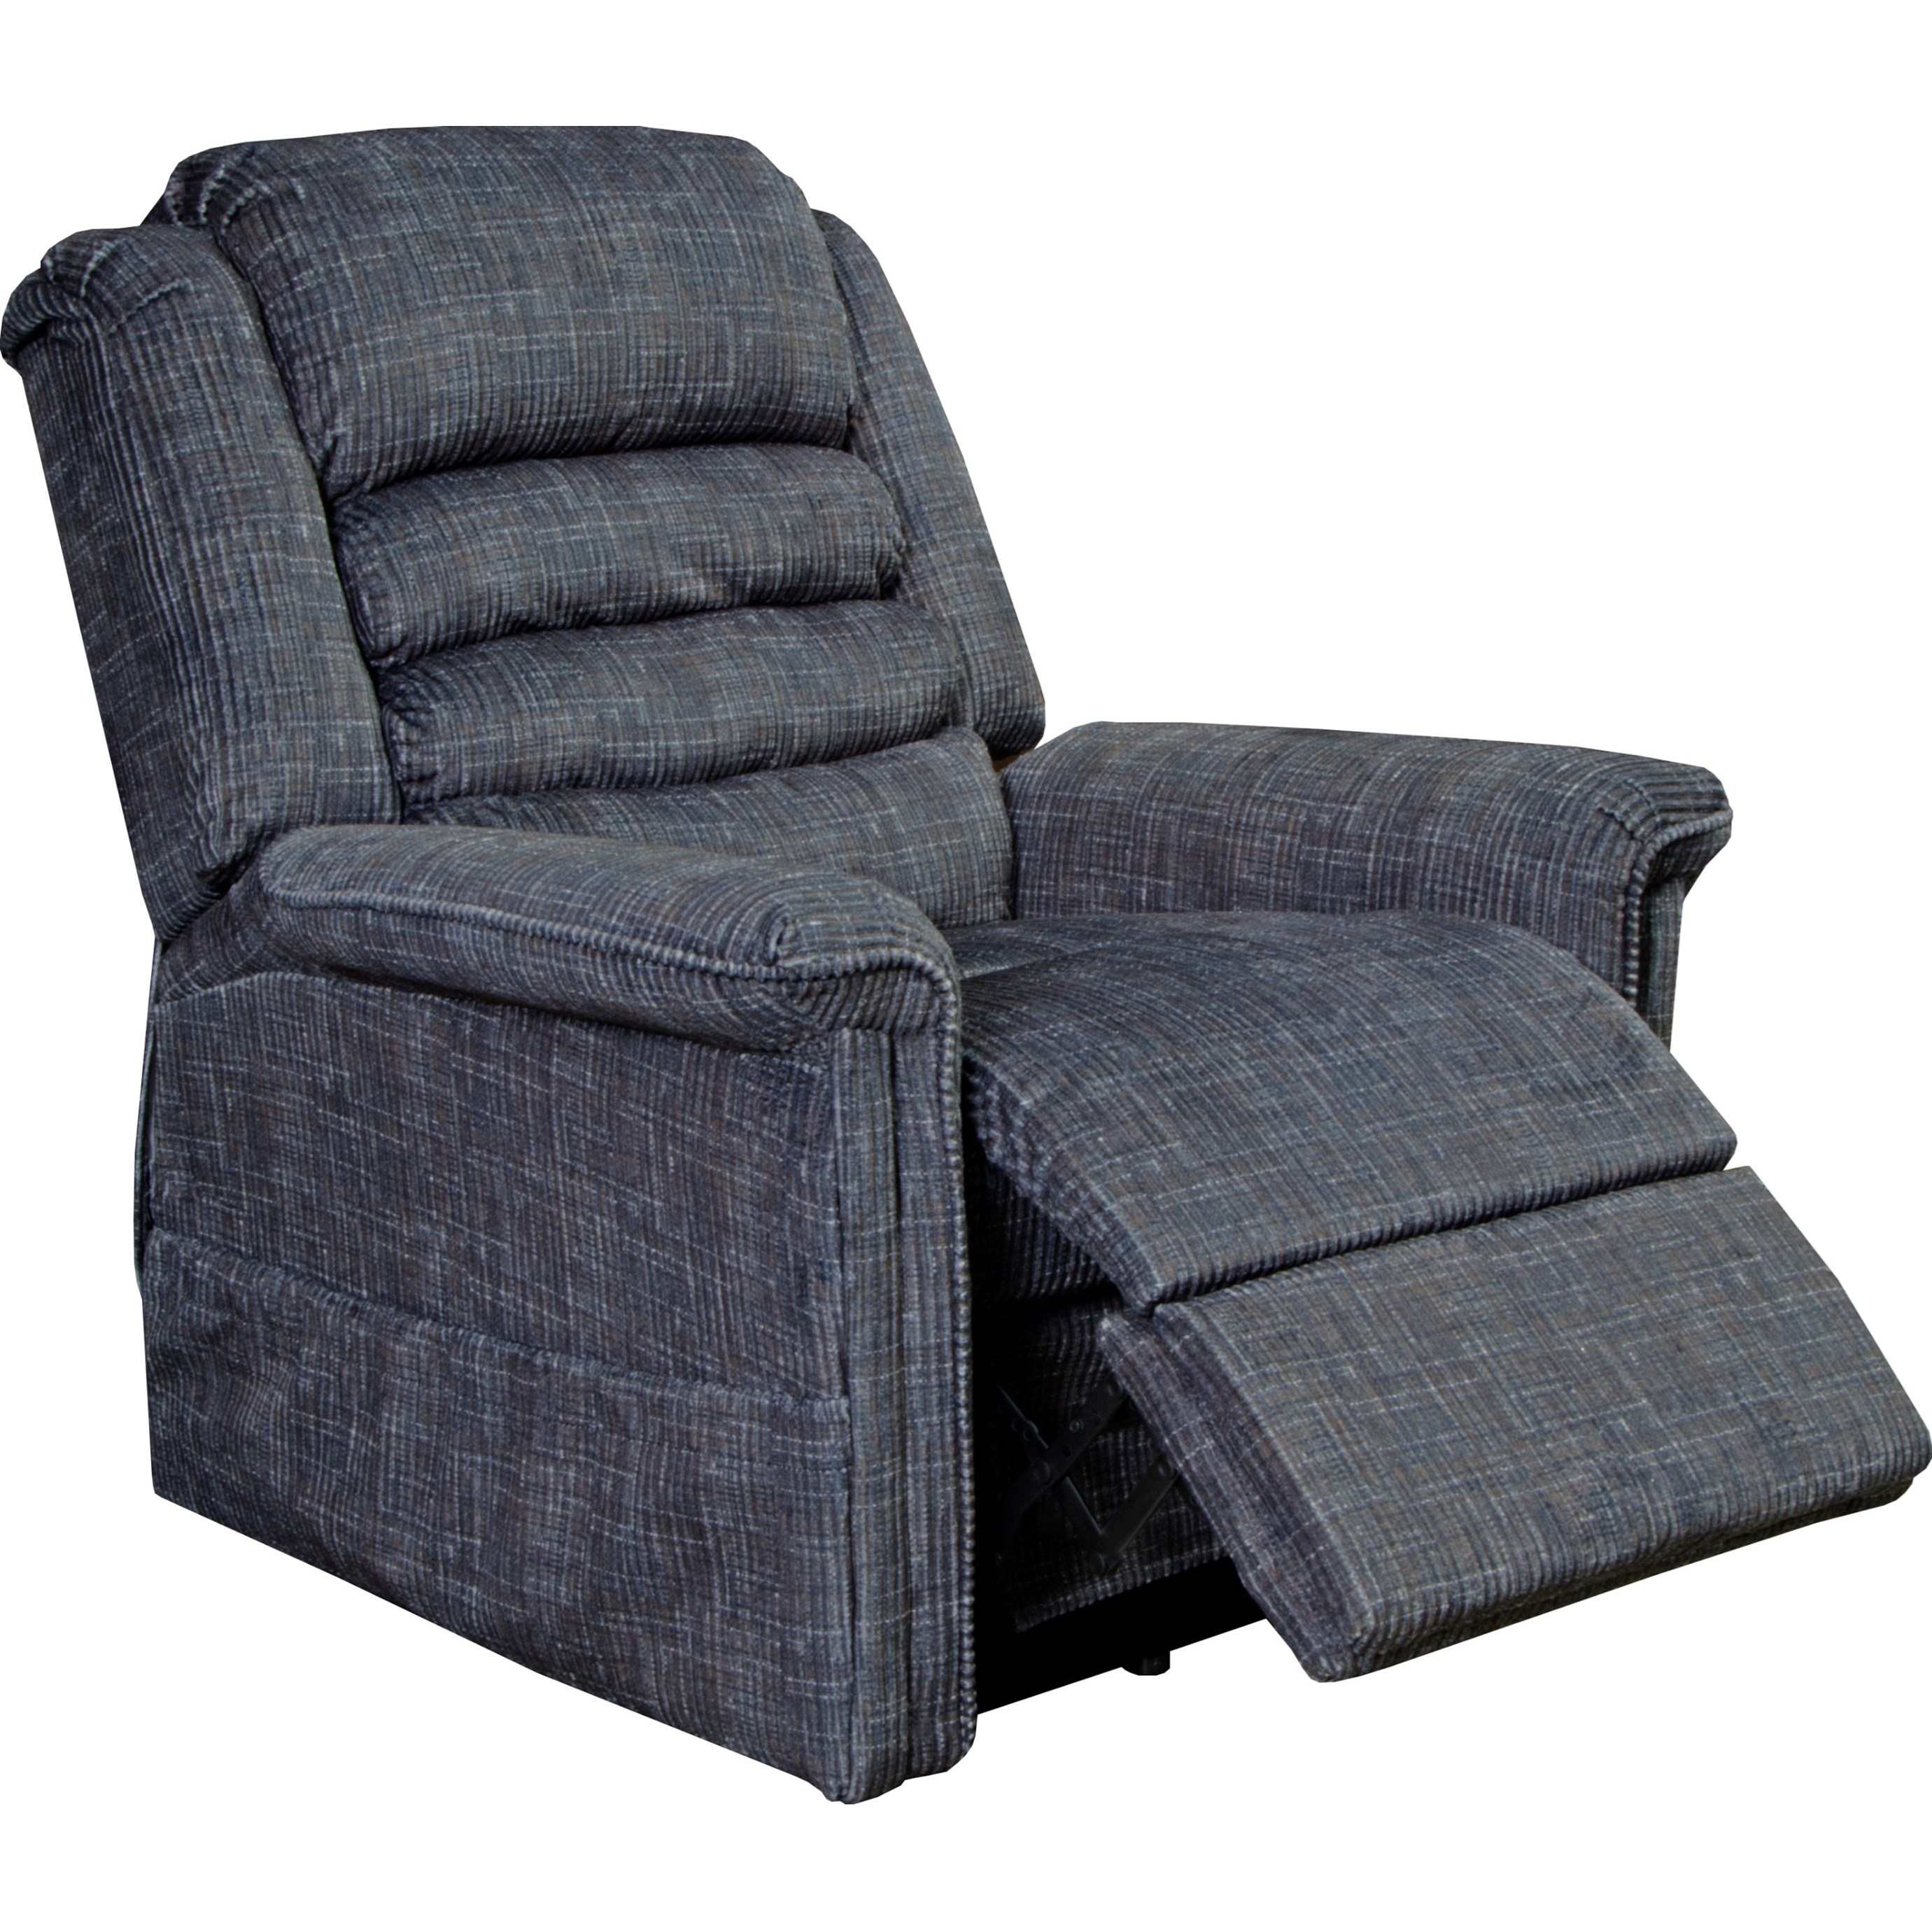 "4825 ""Pow'r Lift"" Recliner by Catnapper at Virginia Furniture Market"